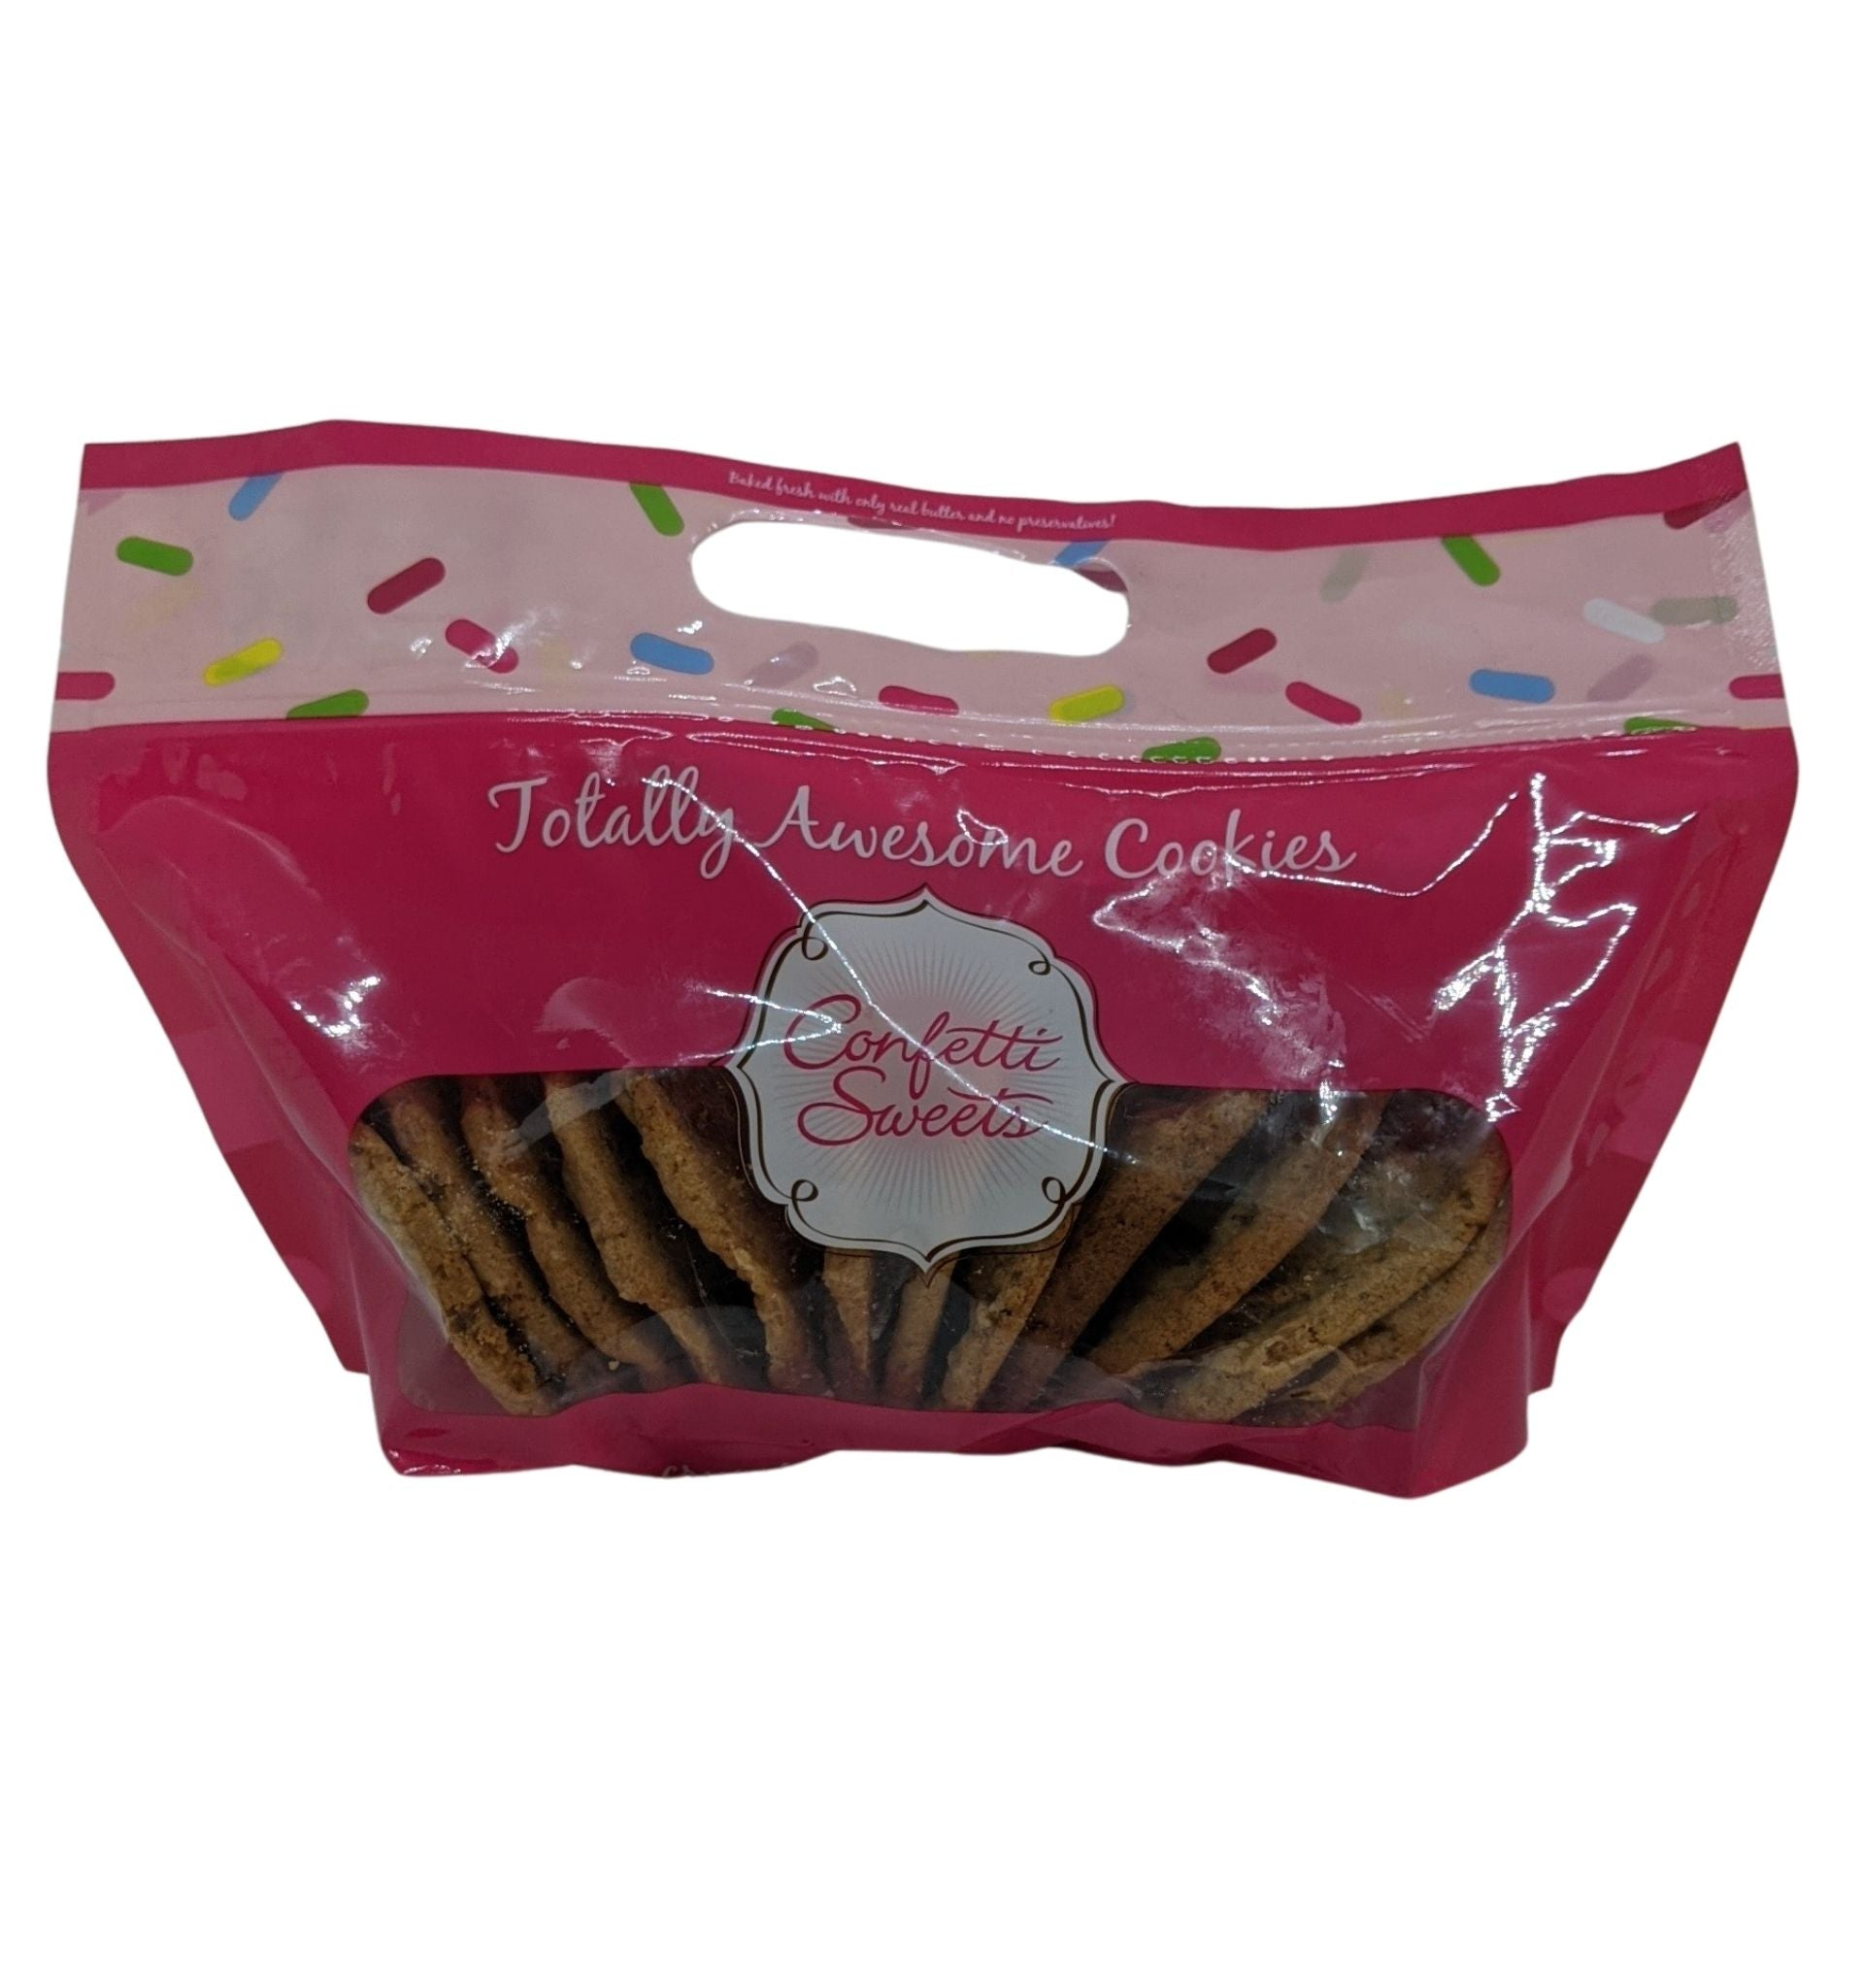 Image of Limited Edition - Cookies by the Dozen - S'mores (Frozen)